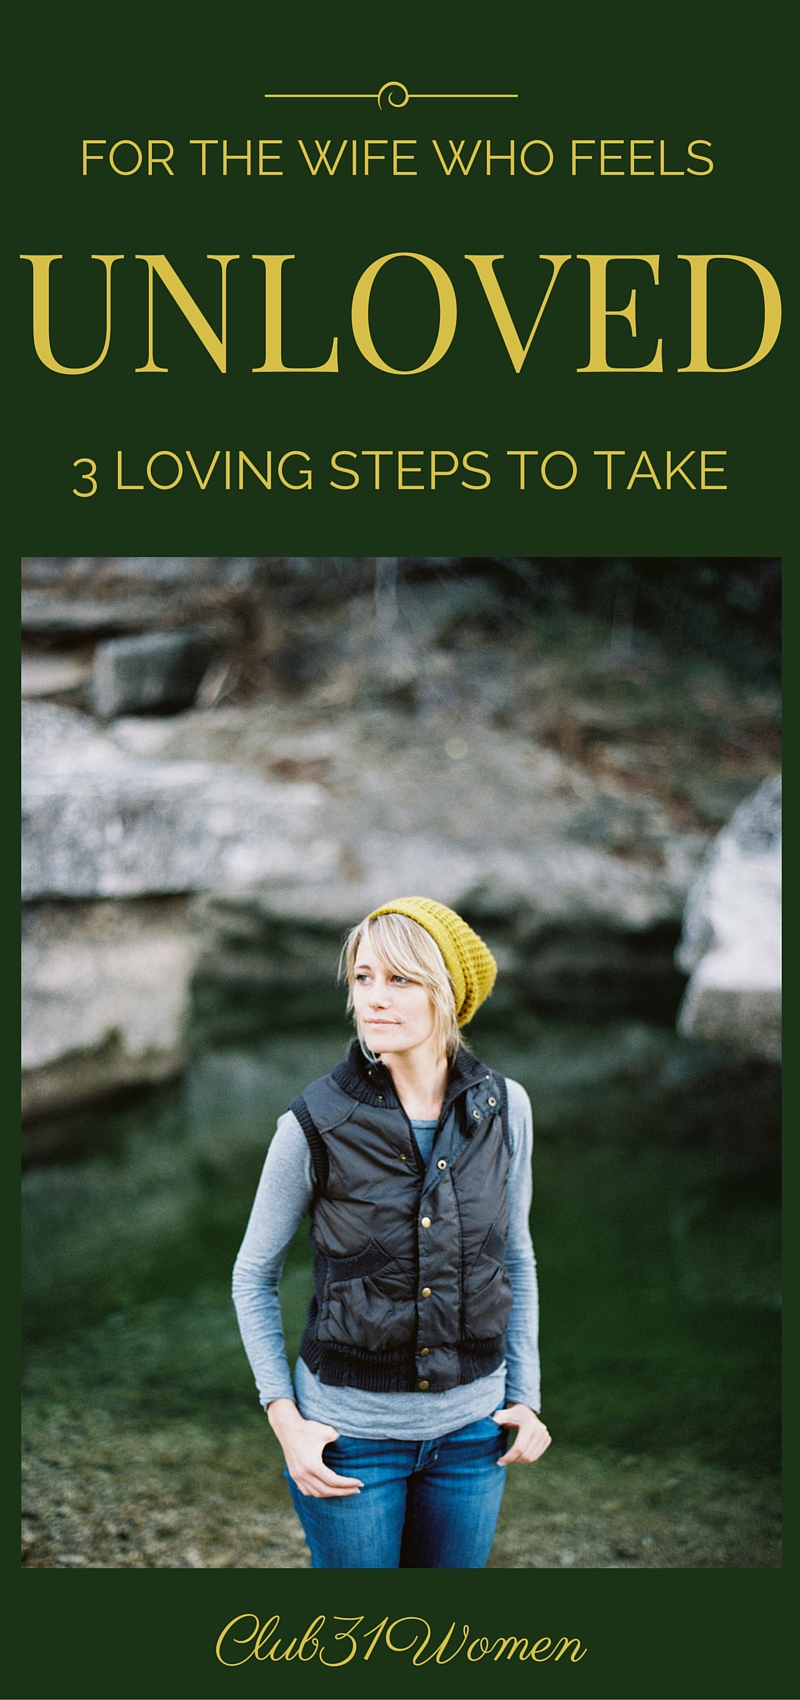 For the Wife Who Feels Unloved - 3 Loving Steps to Take